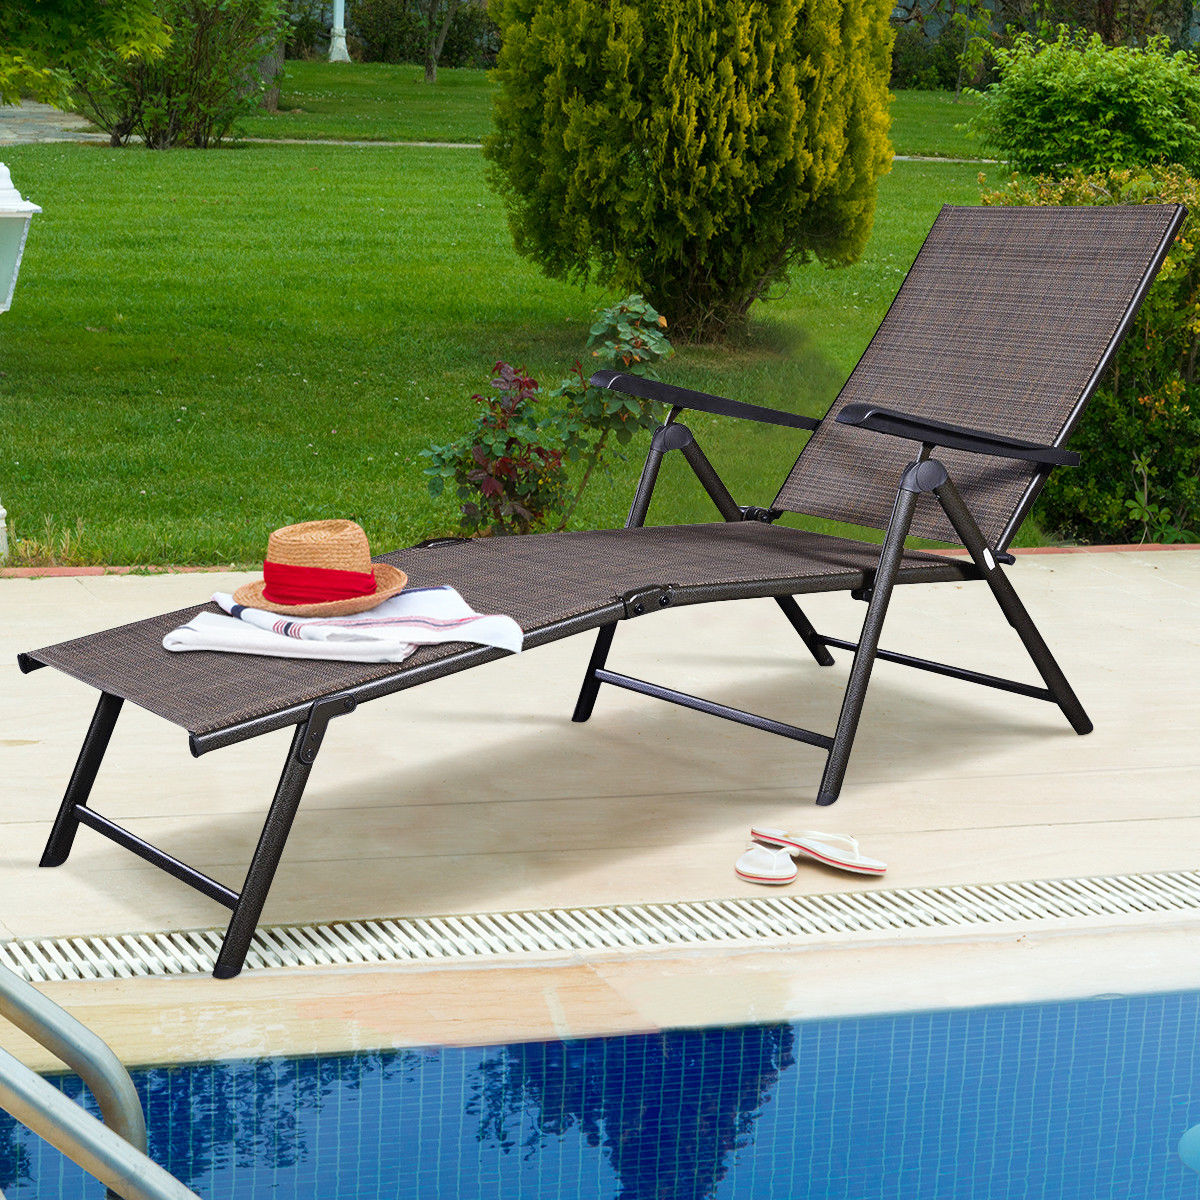 Superieur Product Image Costway Pool Chaise Lounge Chair Recliner Outdoor Patio  Furniture Adjustable